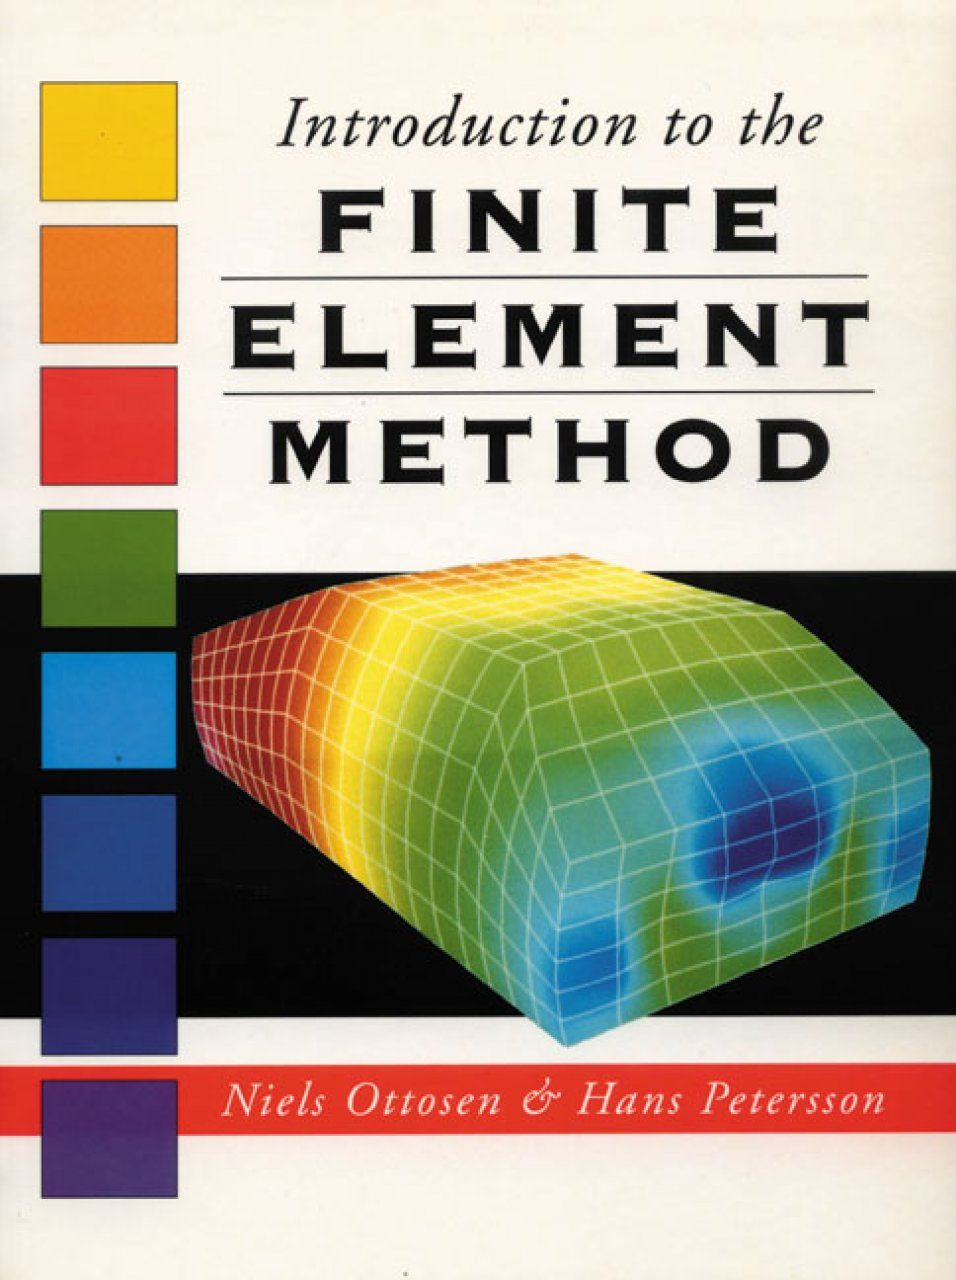 Introduction to the finite element method n ottosen nhbs for Finite element methode